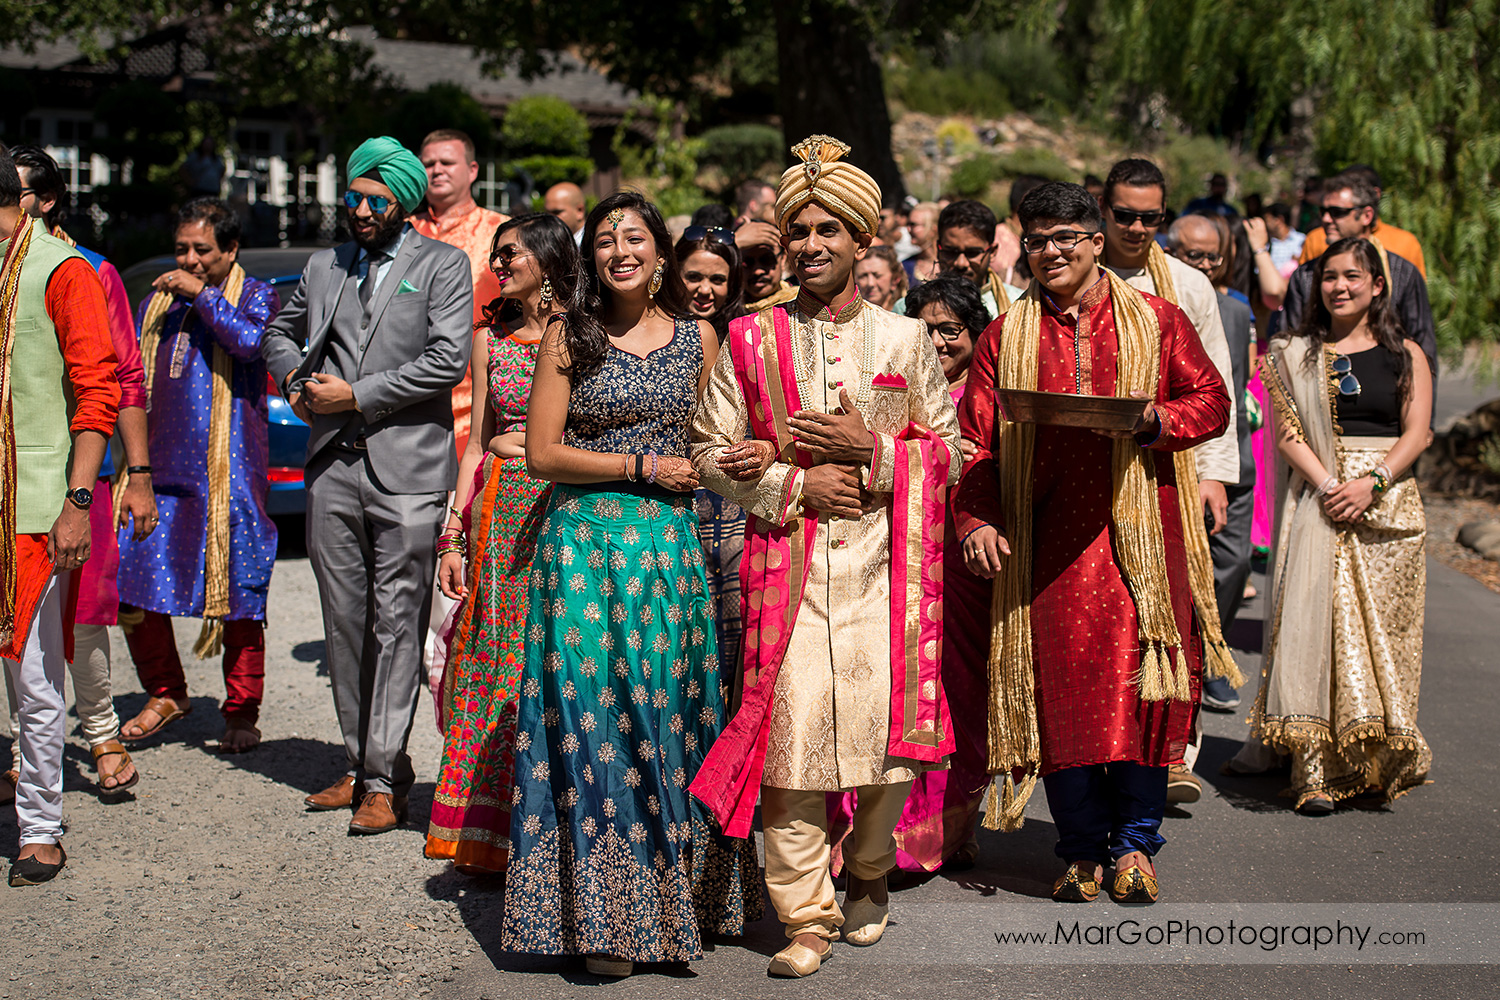 begining of Indian wedding Baraat Swagat at Elliston Vineyards in Sunol